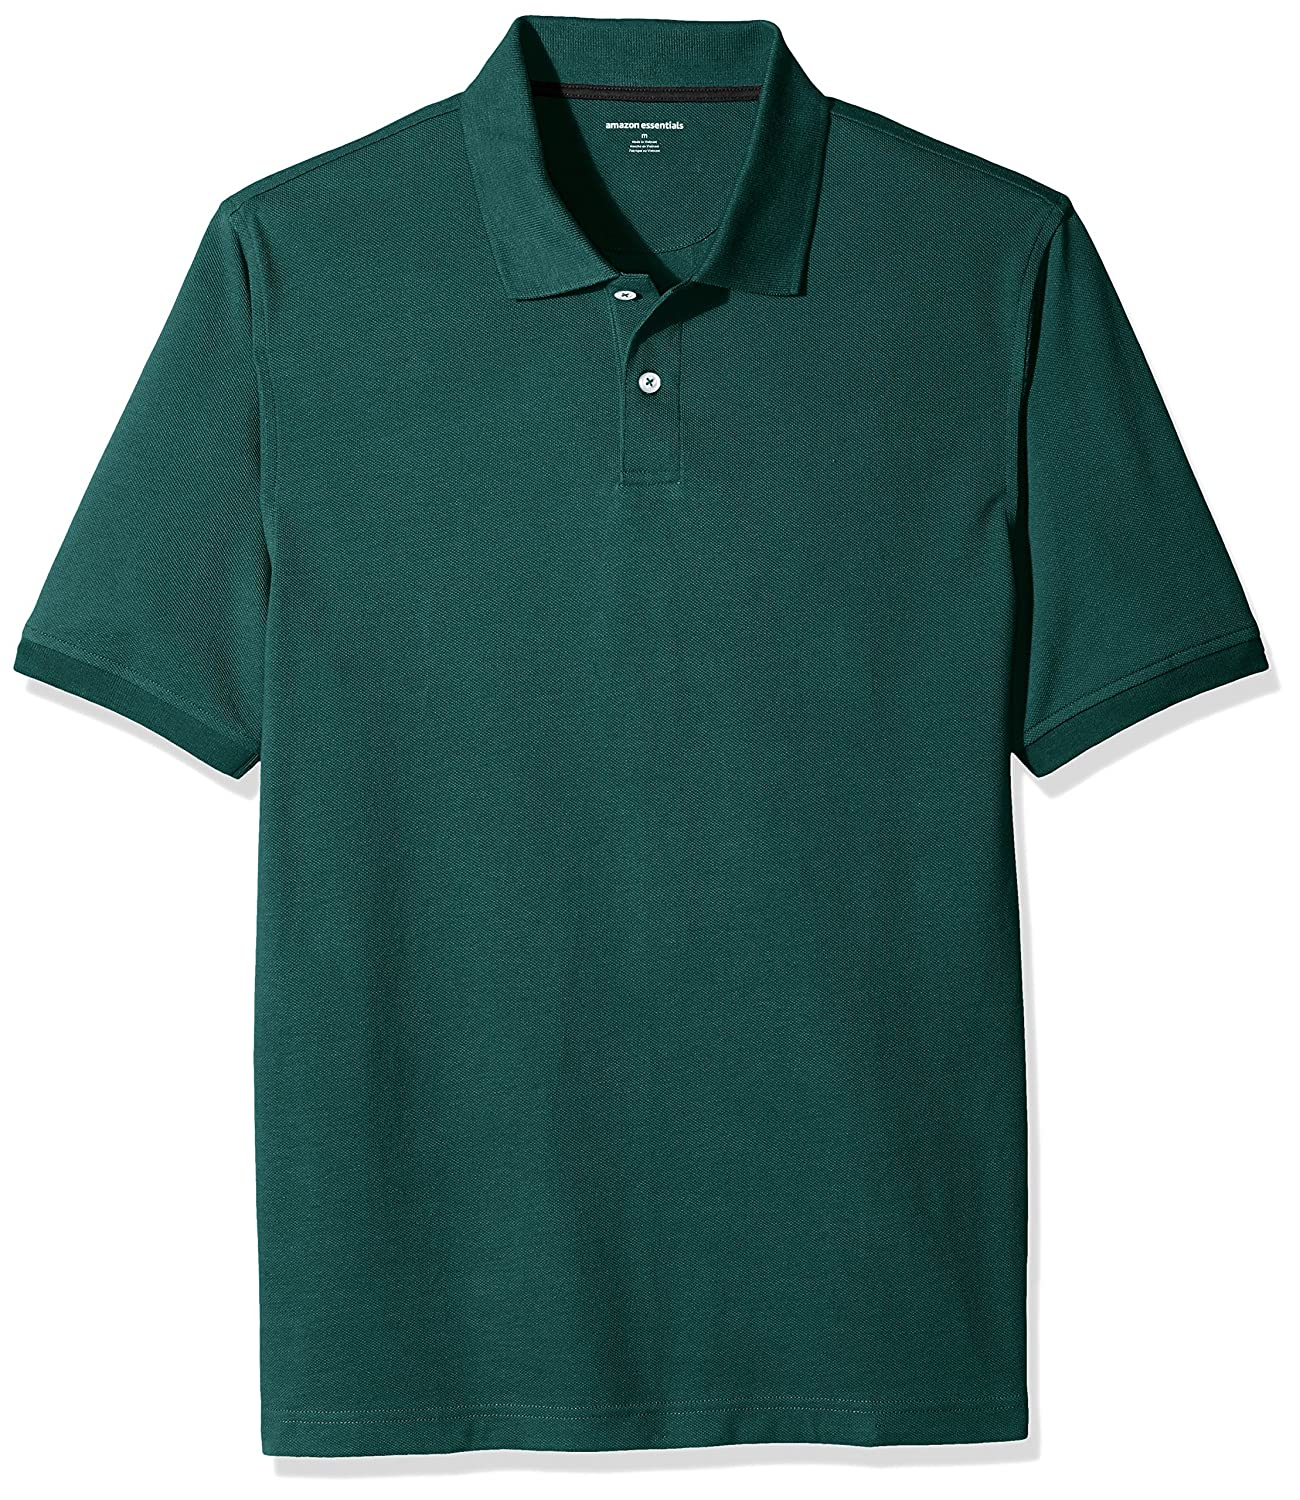 Amazon Essentials Men's Regular-Fit Cotton Pique Polo Shirt F16AE40000